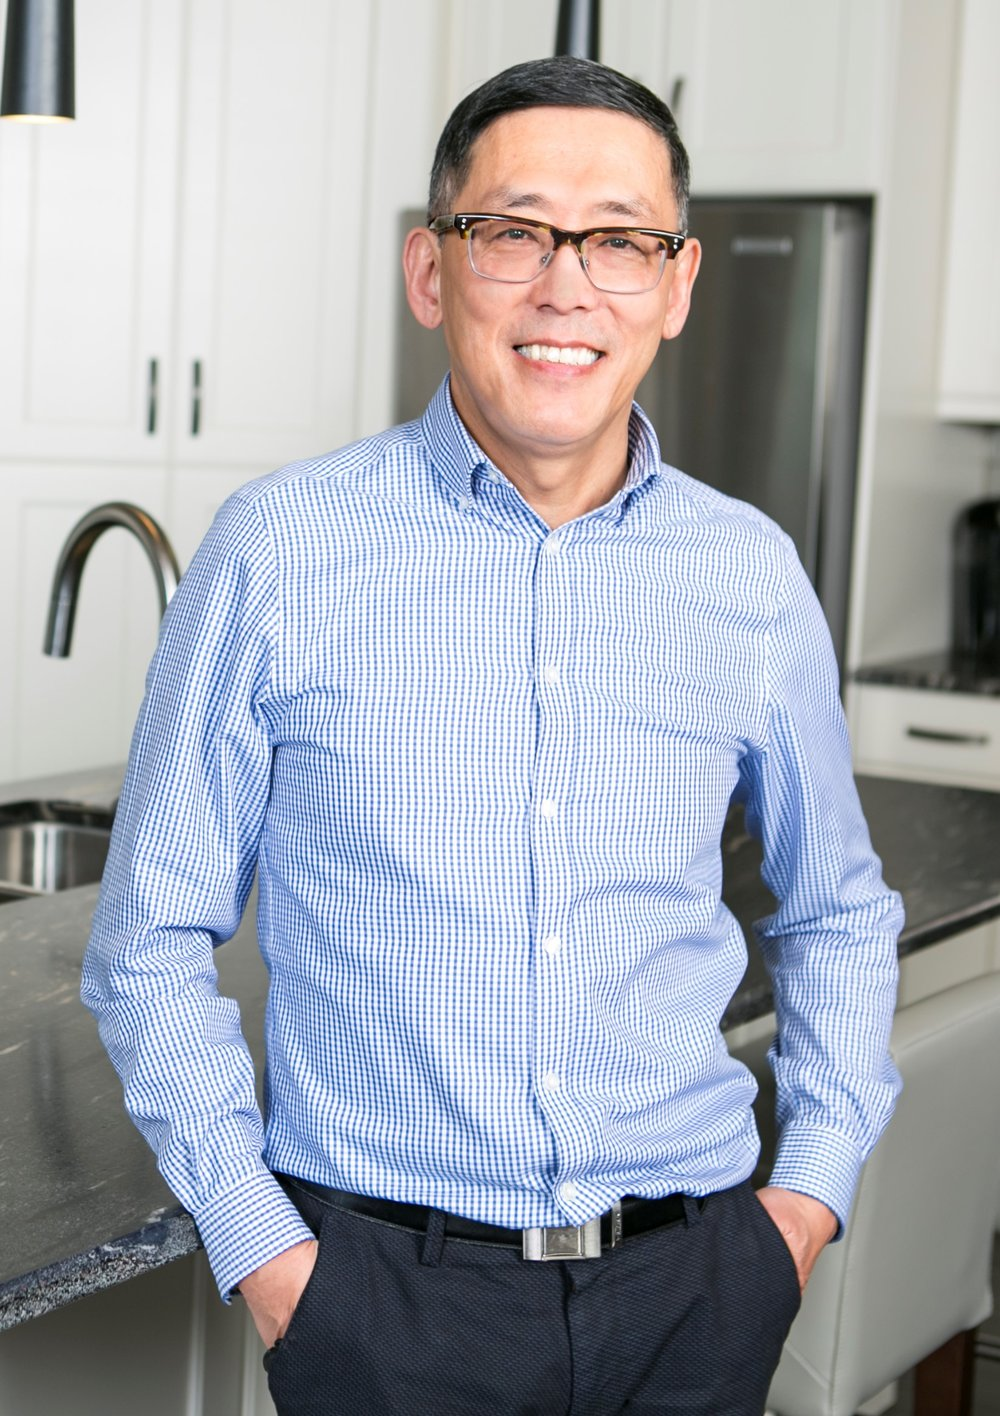 - Wilson came to Canada alone at just 19 years old from Hong Kong to attend University. Has been a Edmontonian for over 40 years, as past experience as a business owner.